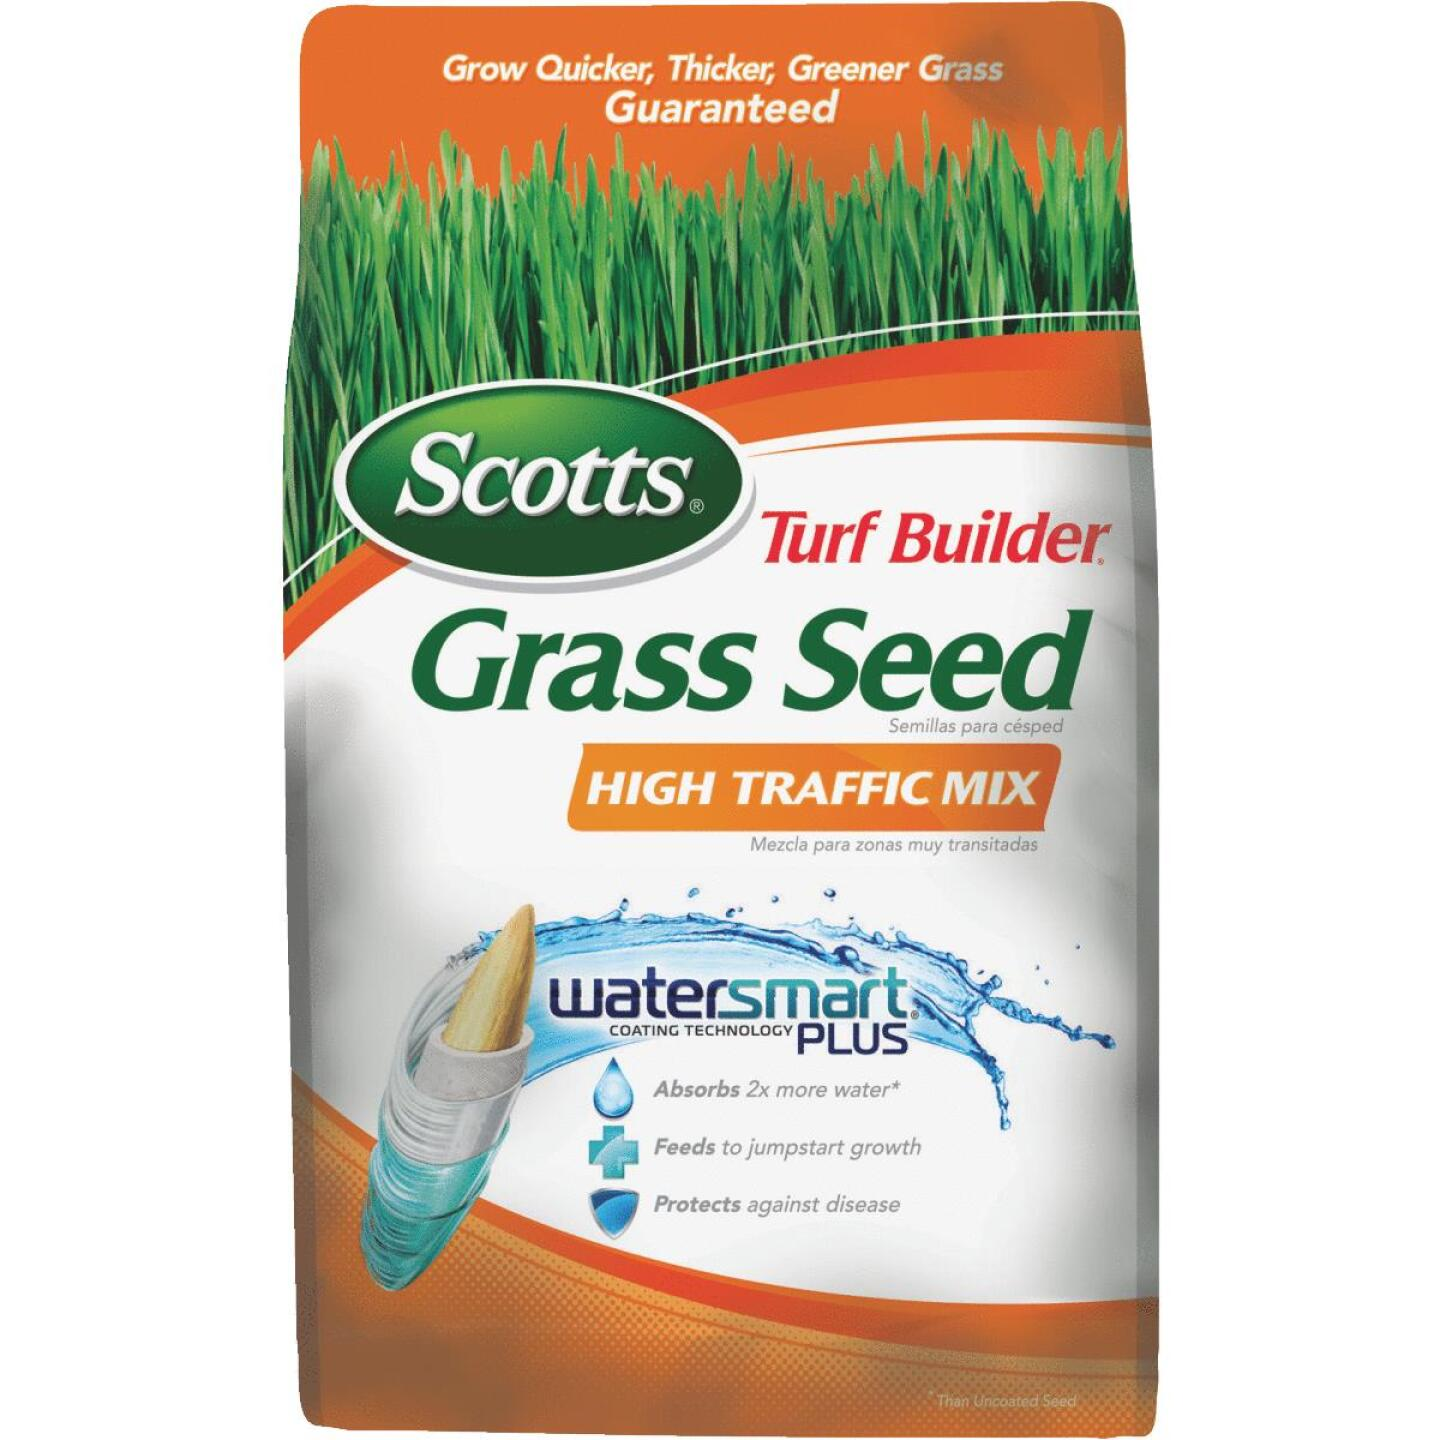 Scotts Turf Builder 7 Lb. Up To 3500 Sq. Ft. Coverage High Traffic Grass Seed Image 1